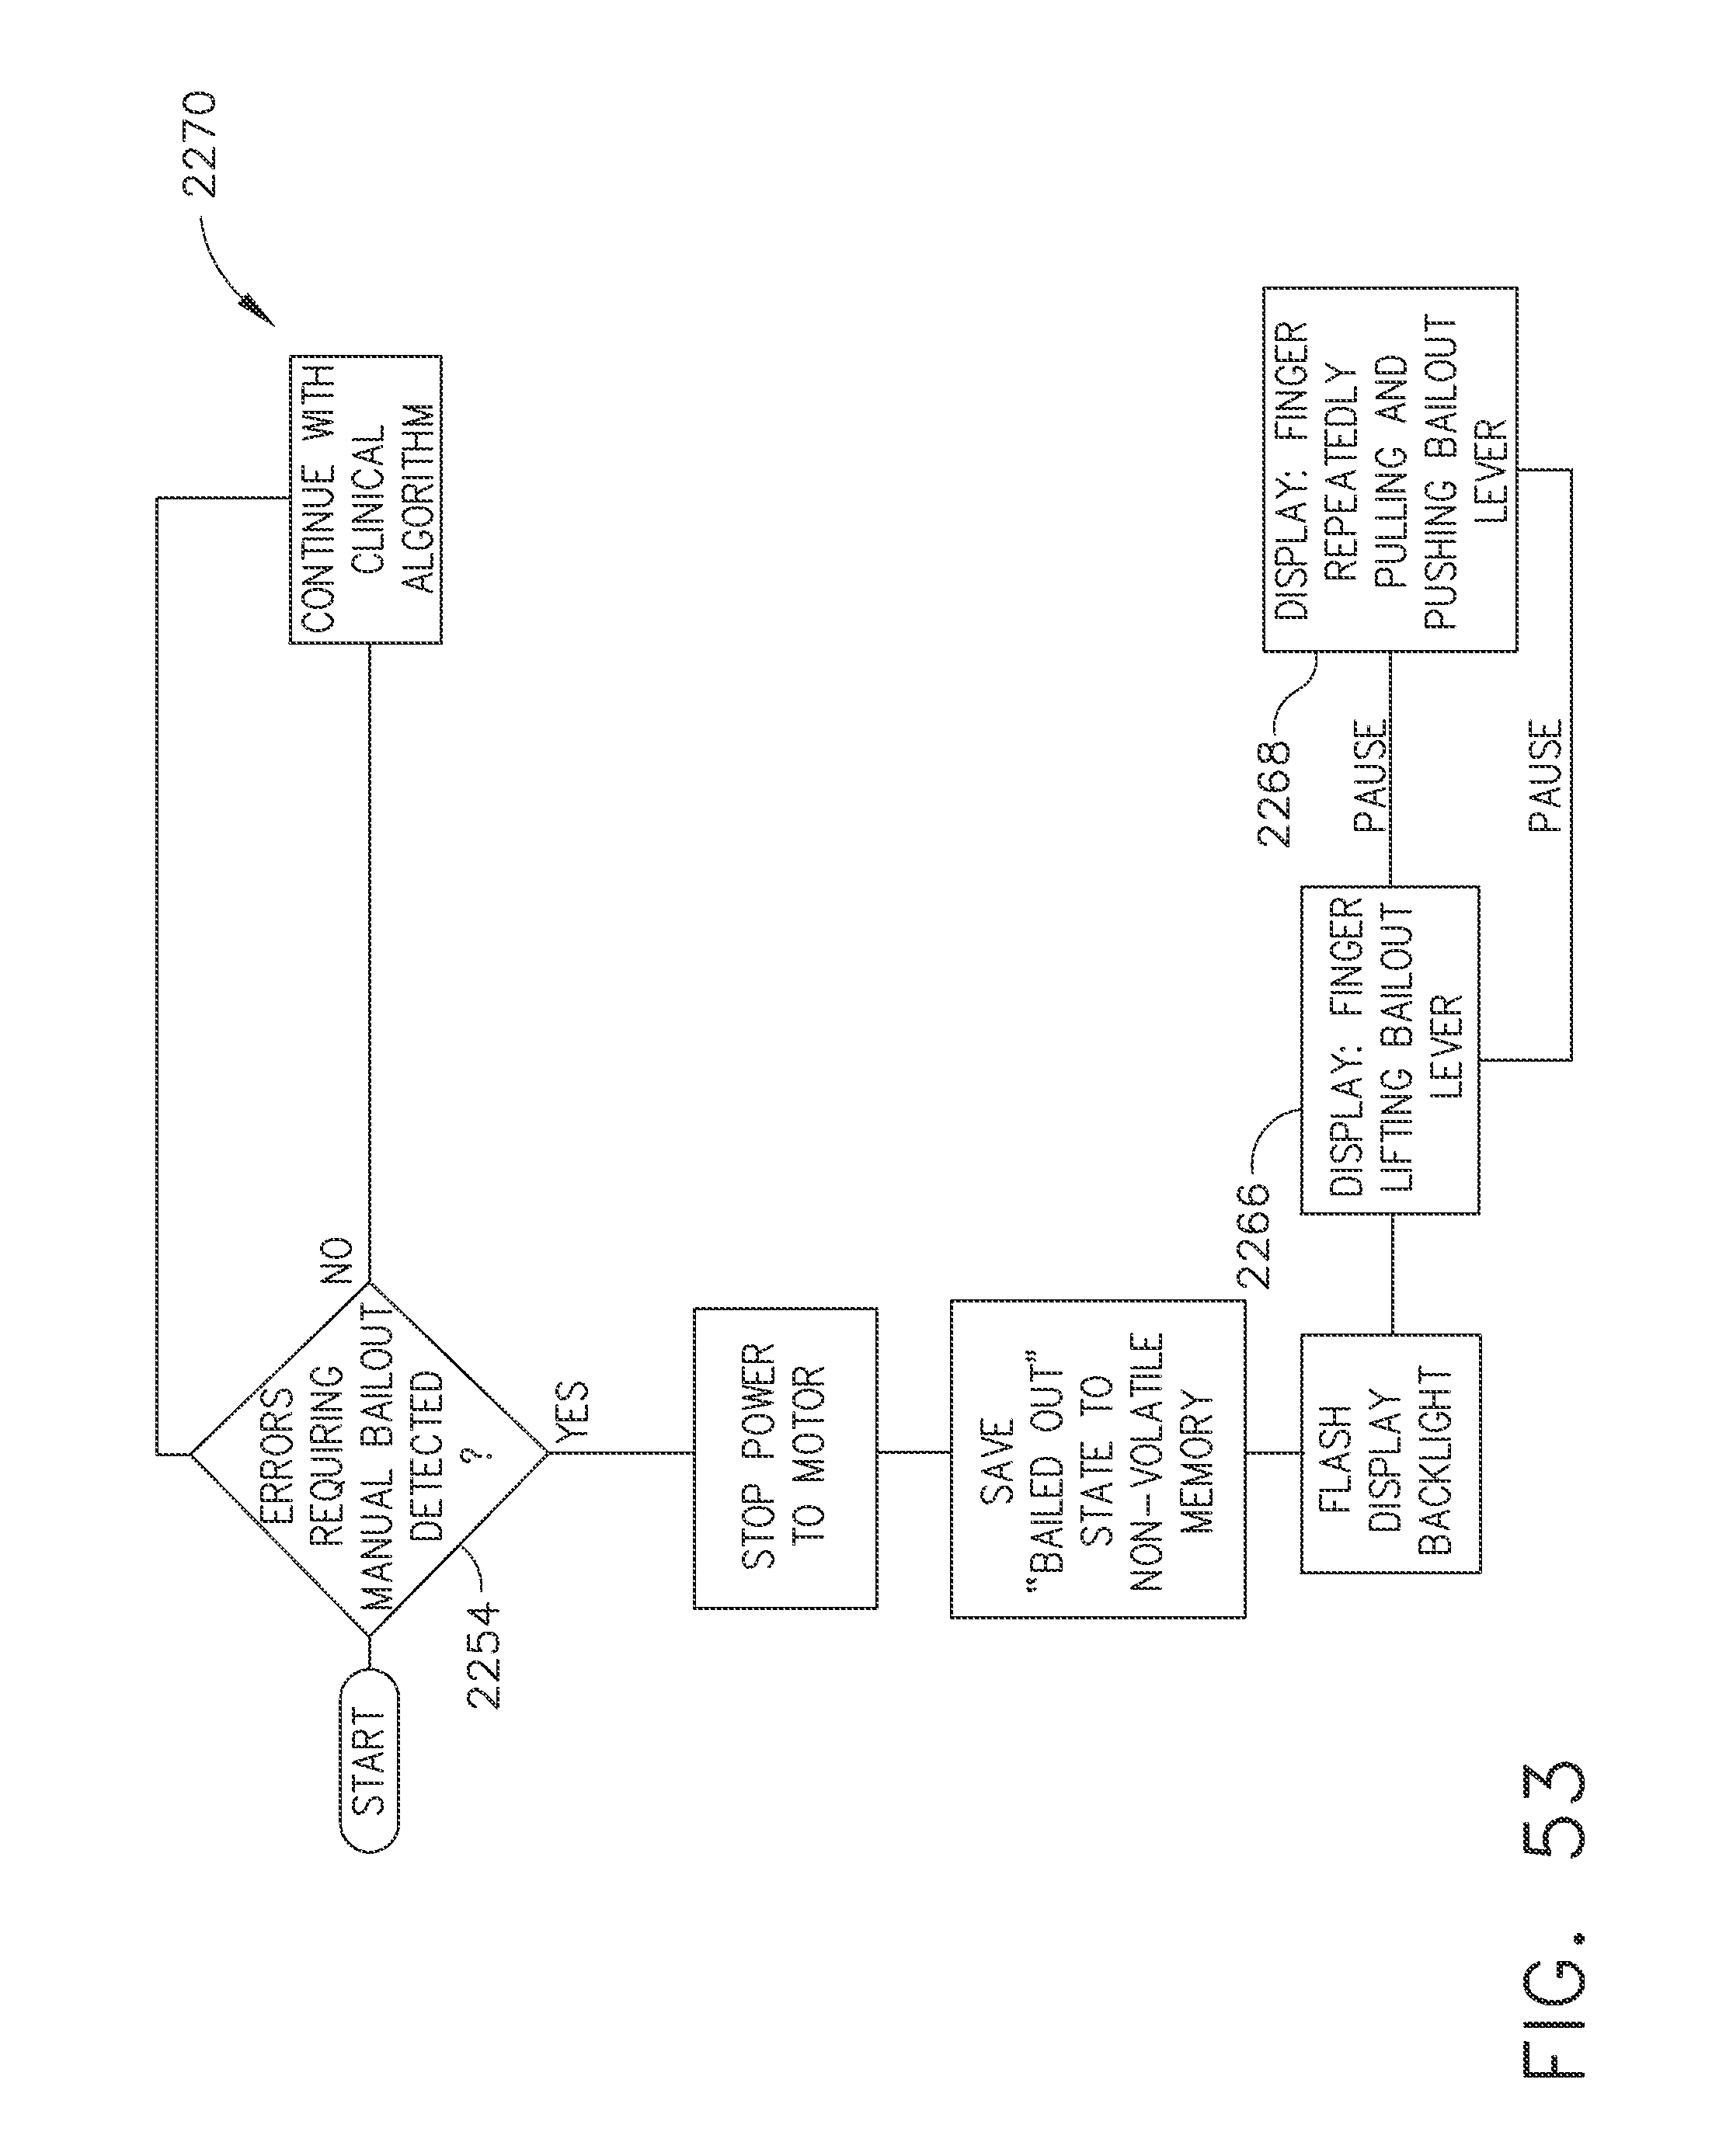 US20150272580A1 - Verification of number of battery exchanges